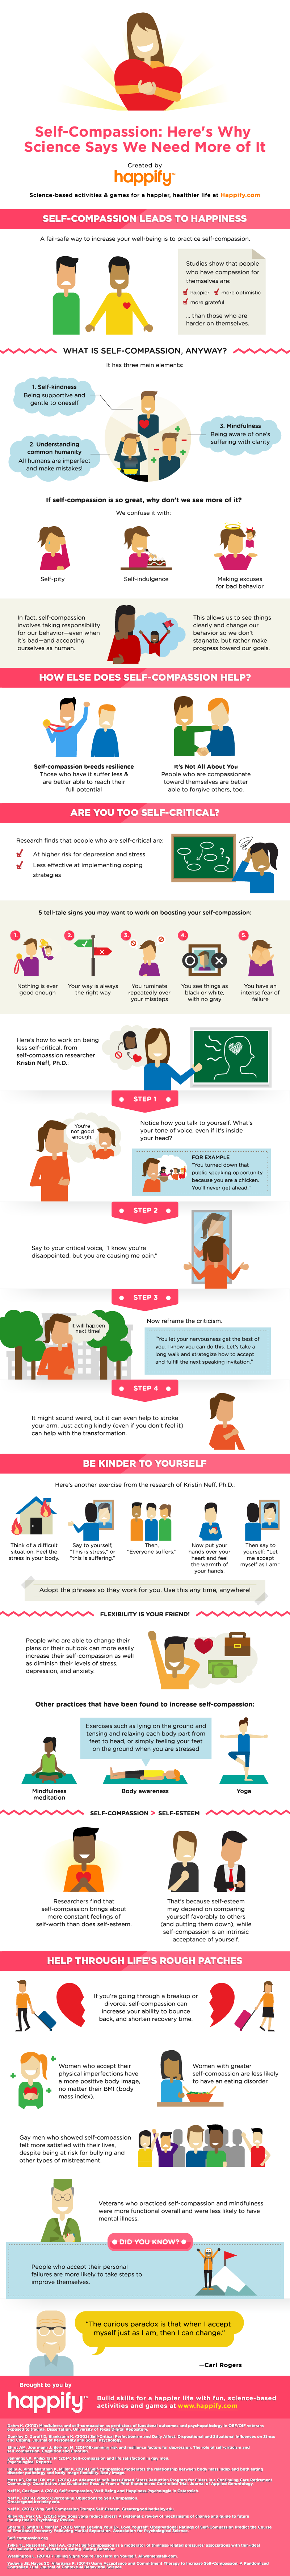 INFOGRAPHIC: Here's Why Science Says We Need to Have More Self-Compassion - Happify Daily